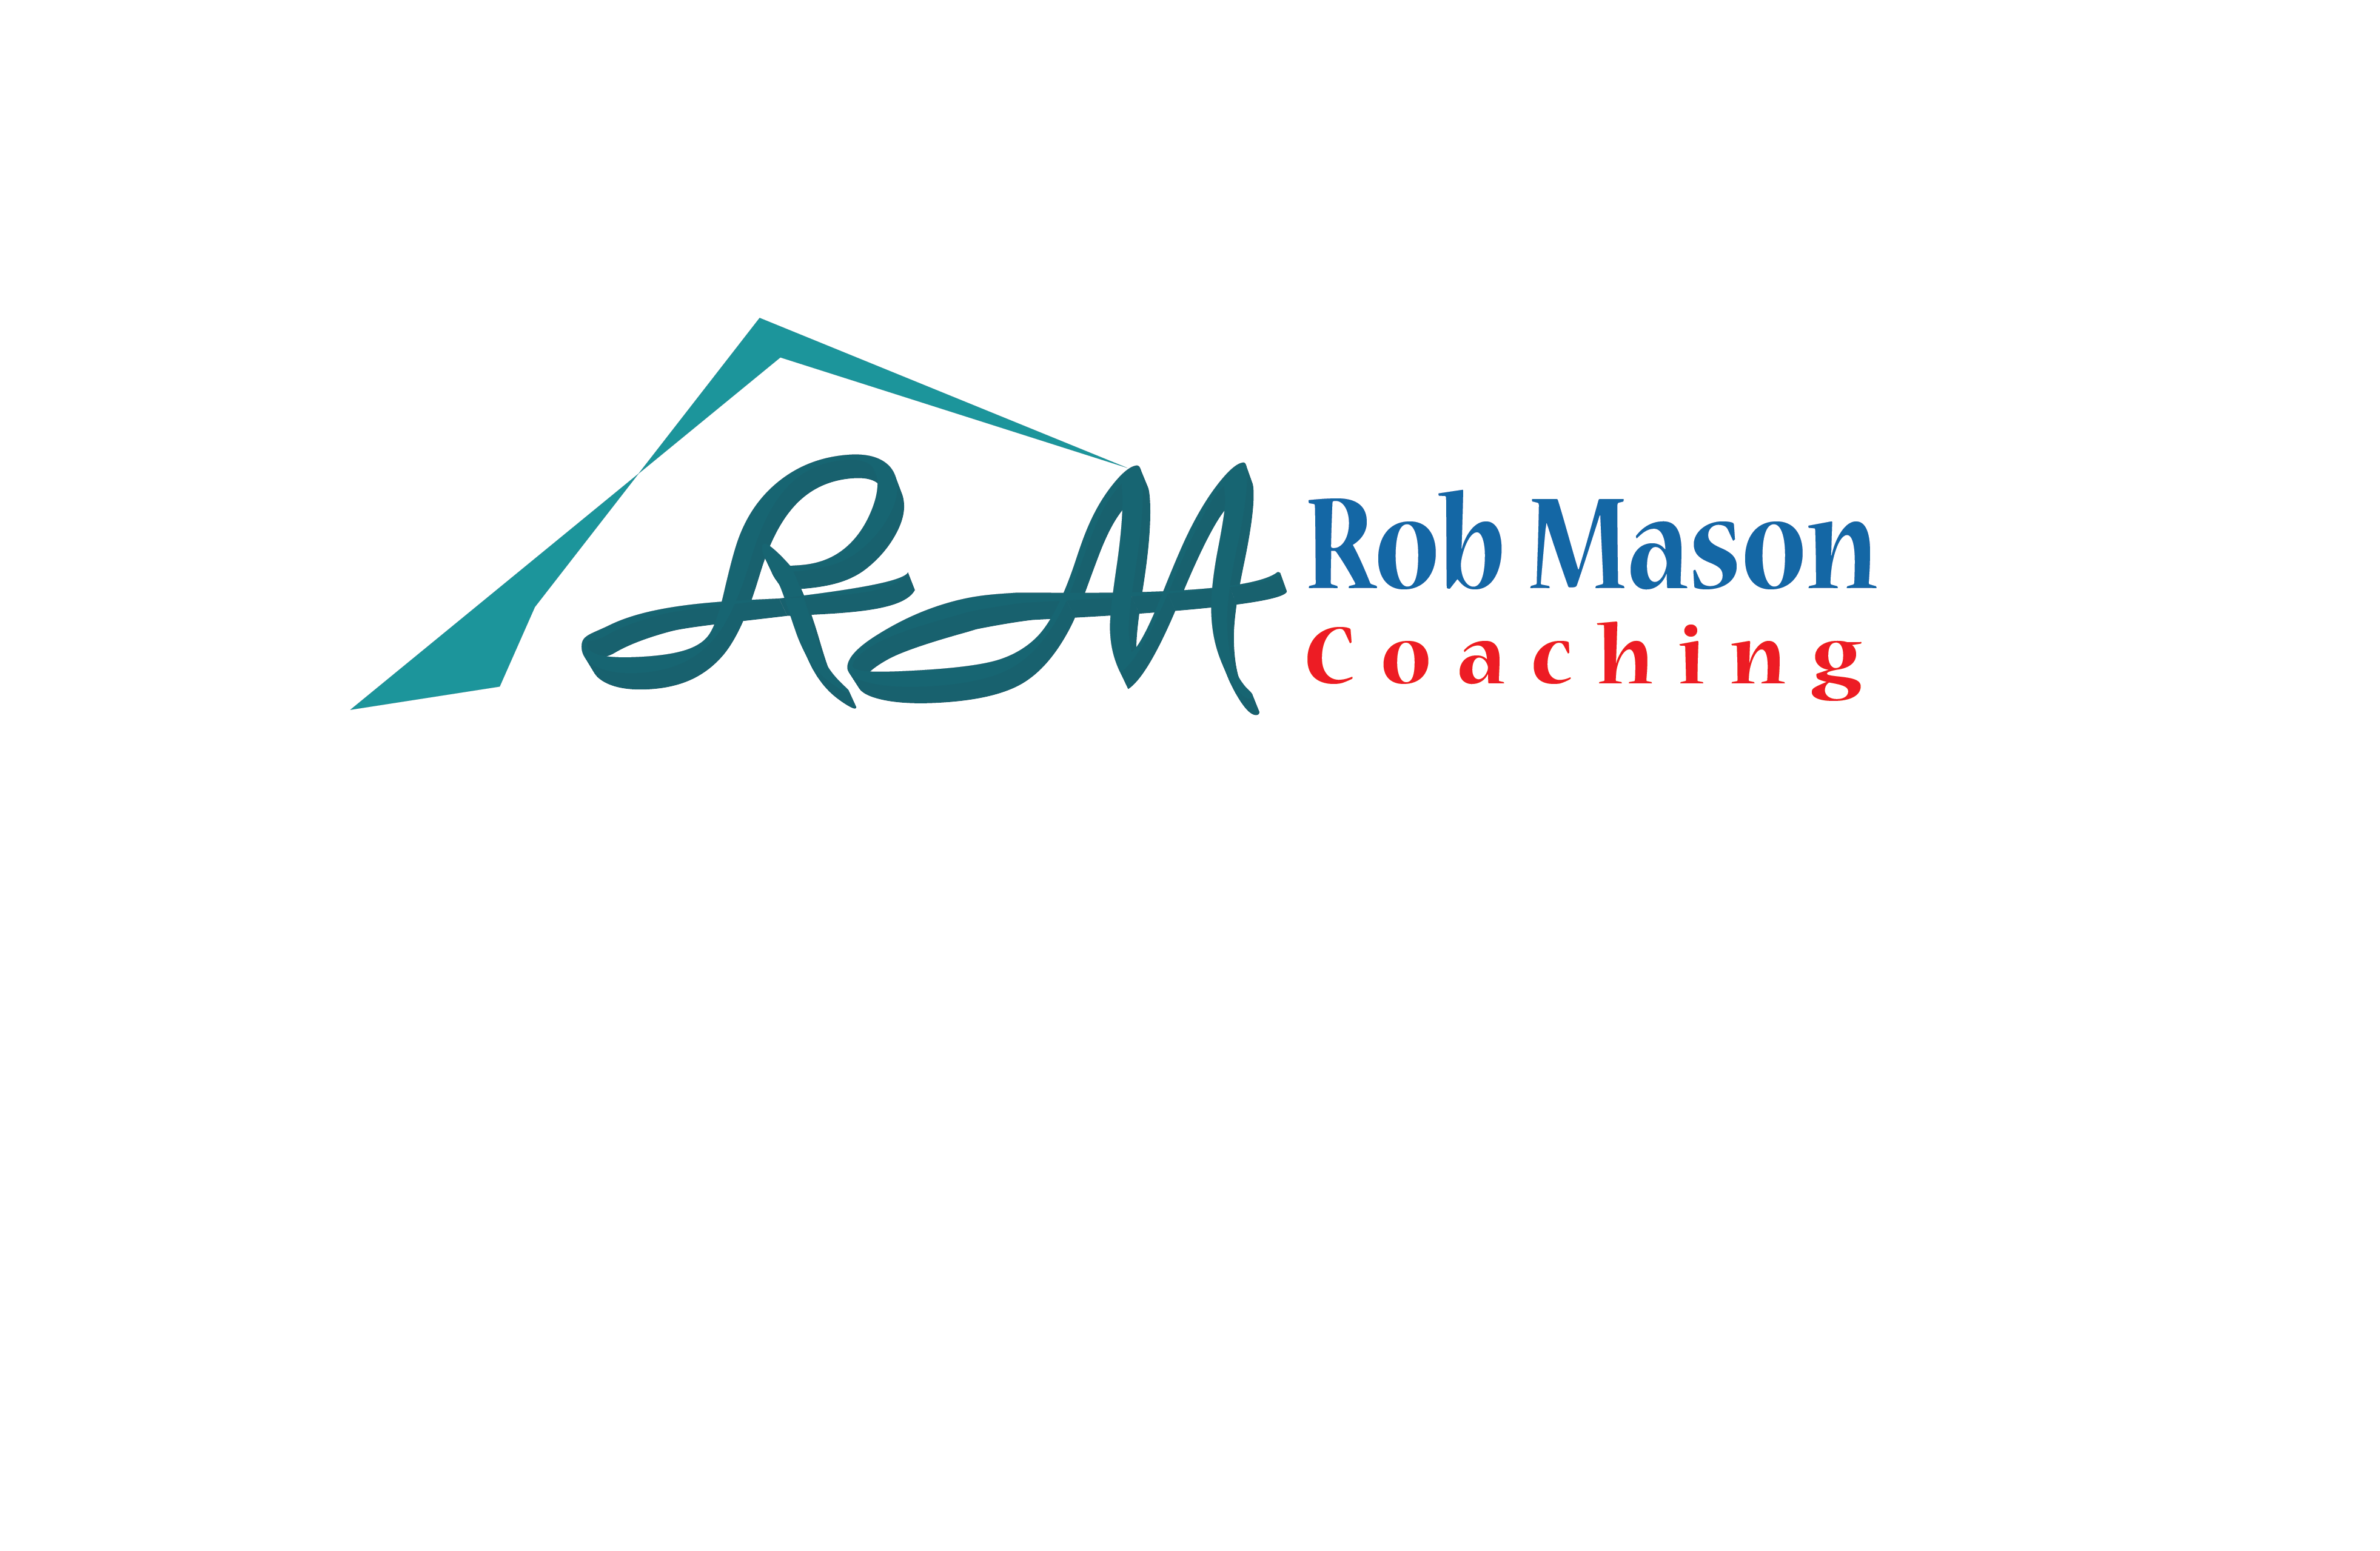 Logo Design by Sandiip Khanal - Entry No. 56 in the Logo Design Contest New Logo Design Needed for Exciting Company Rob Mason Coaching.